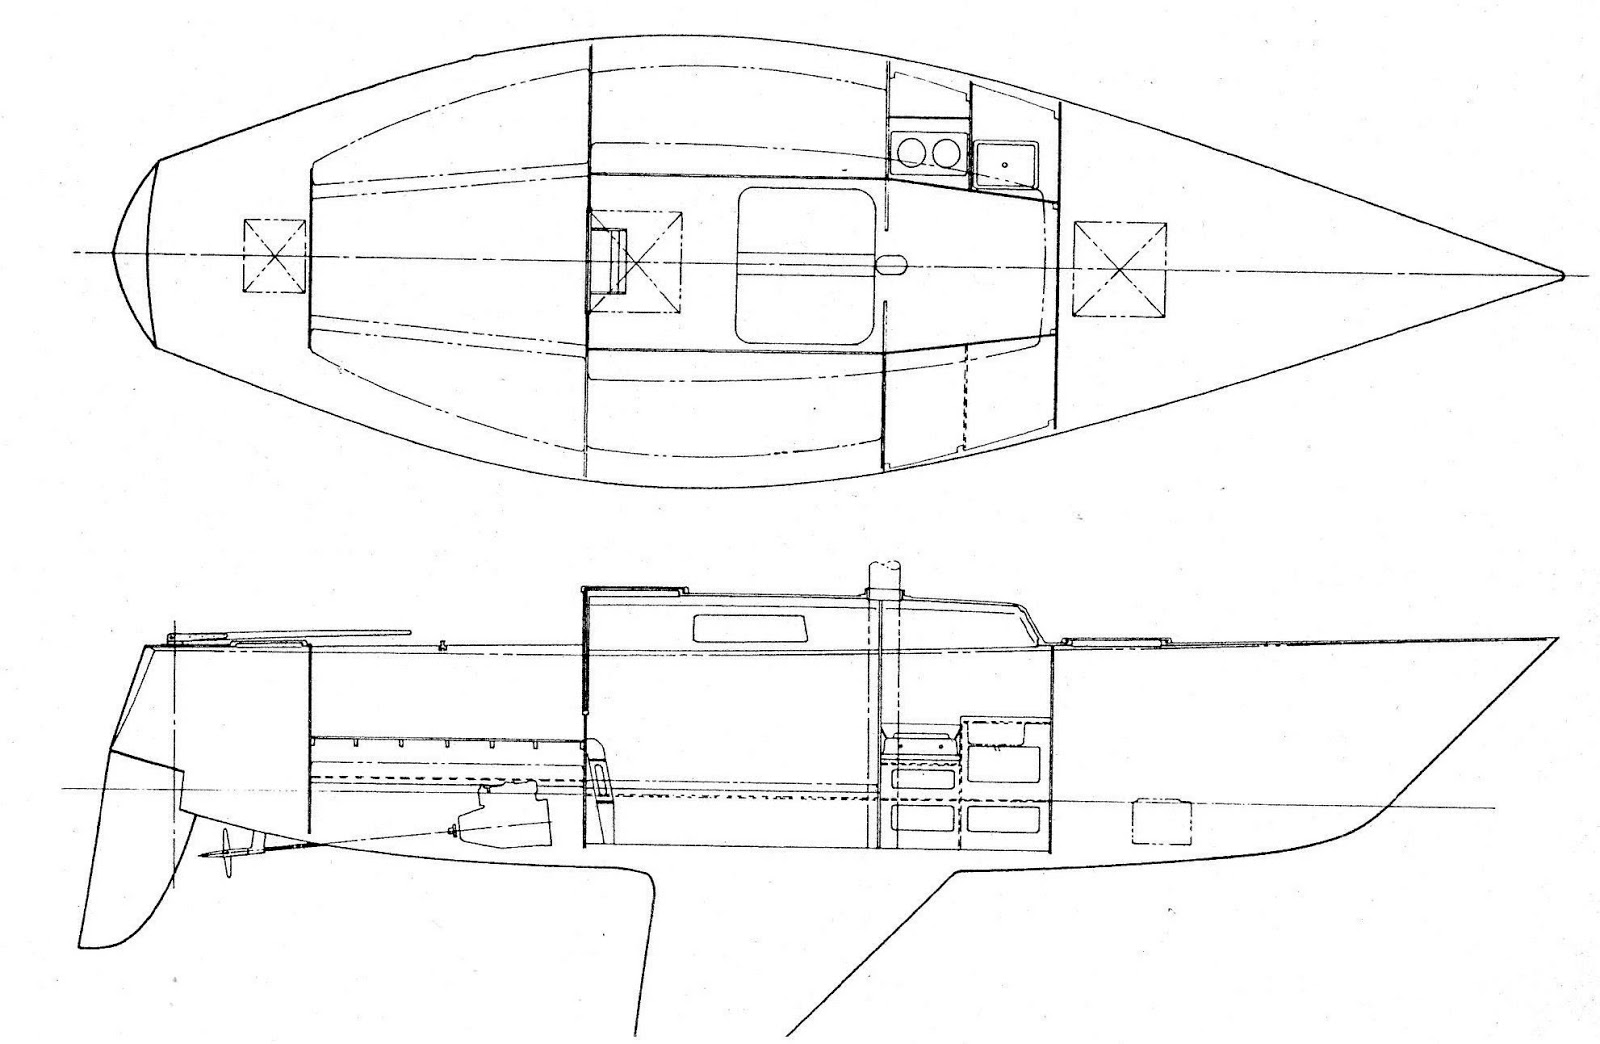 Rb Sailing Ganbare Peterson One Tonner 7 Way Wiring Diagram Also Featured What Would Become The Trademark Of A Deep Forefoot Narrow Pintail Stern And Rudder Mounted Directly Under Small Transom